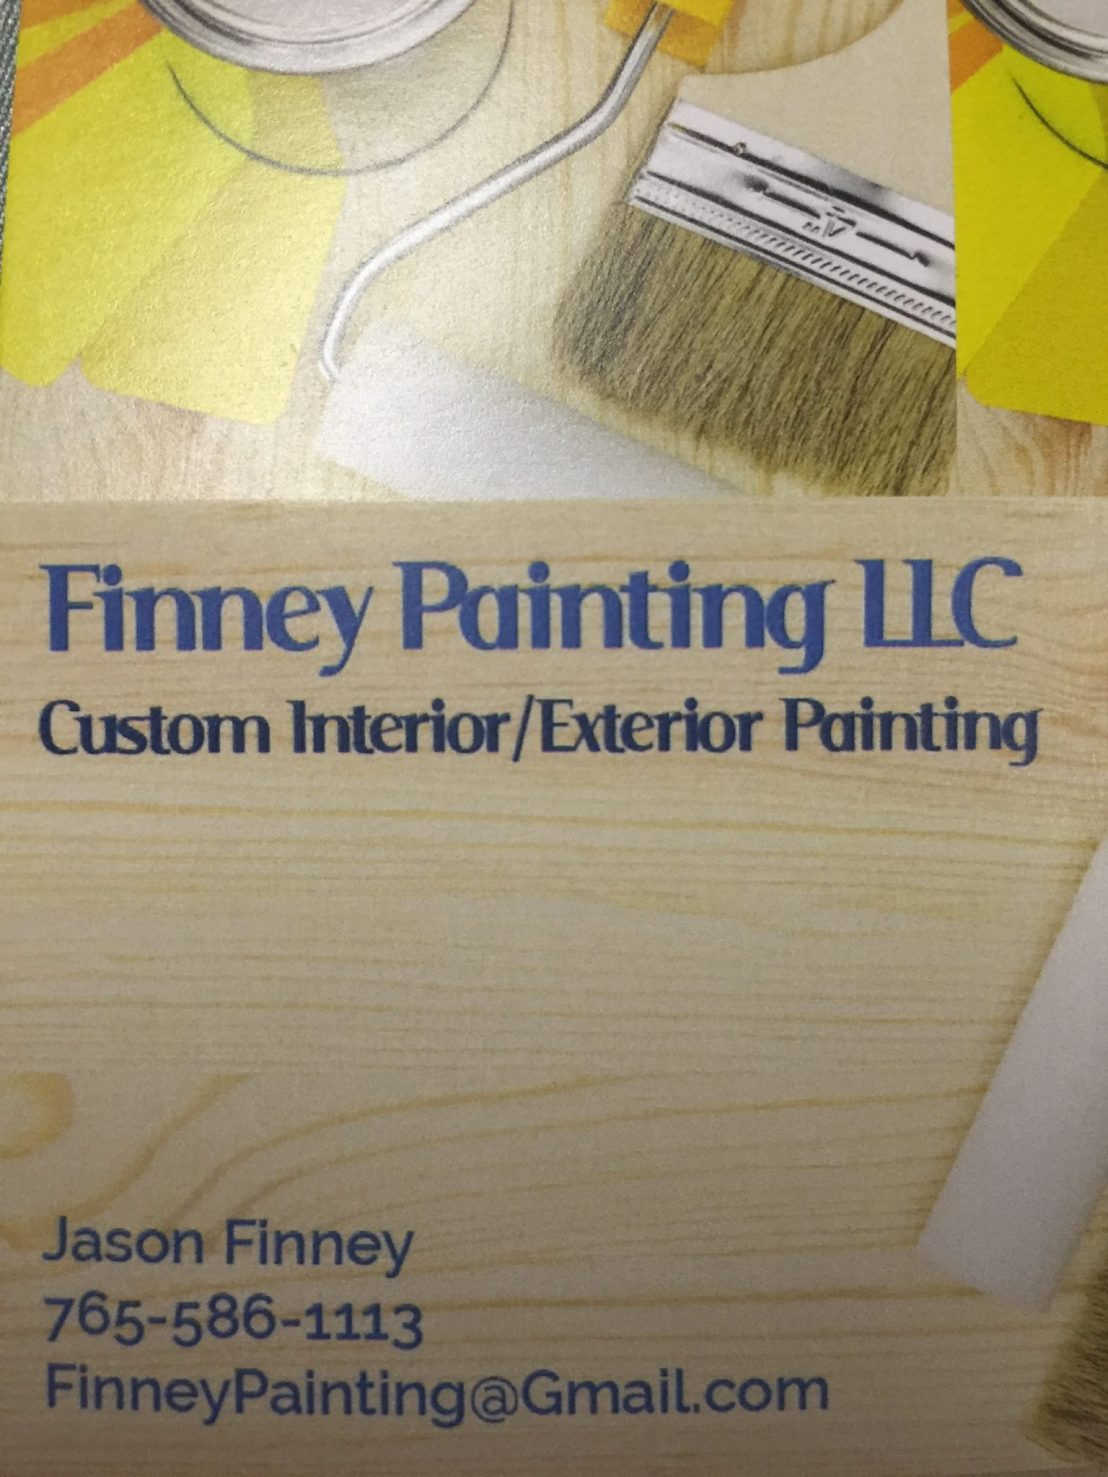 Finney Painting